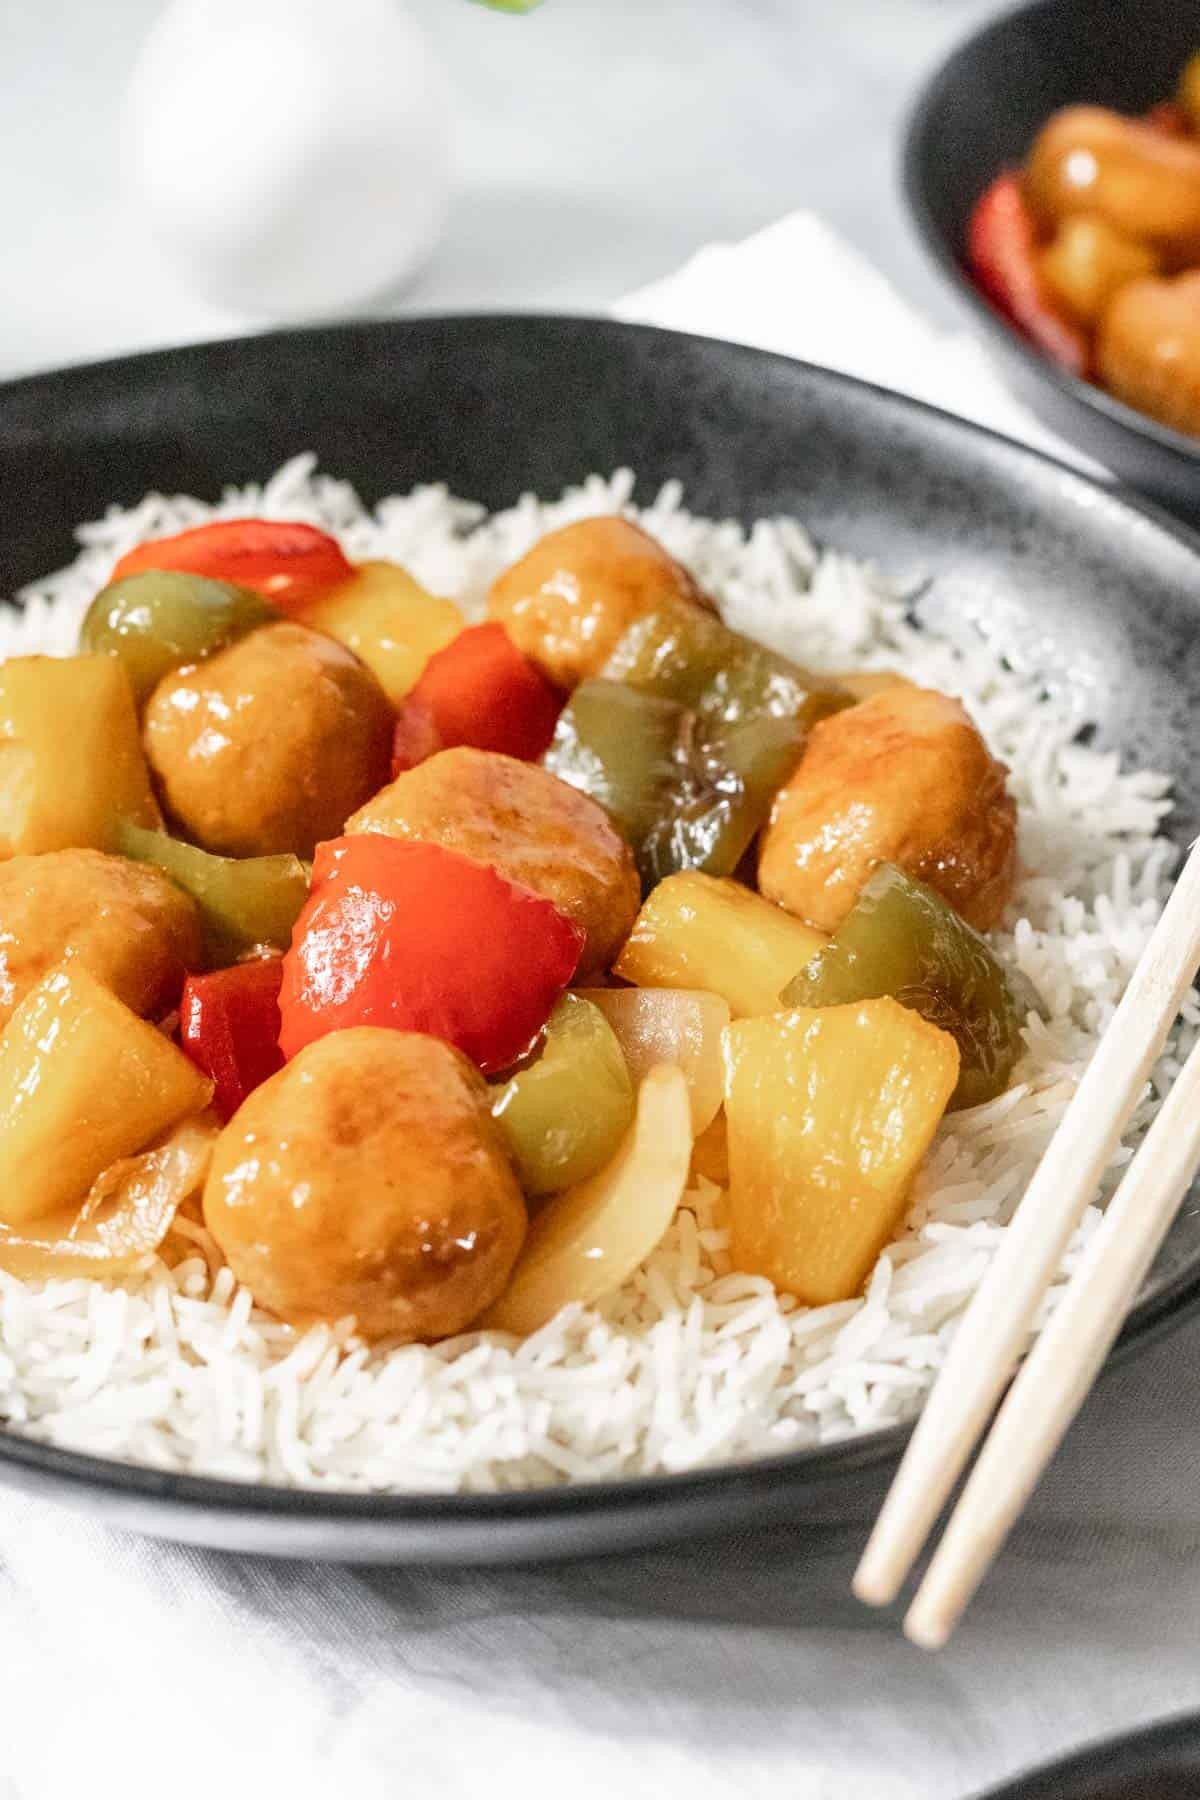 Sweet and sour chicken meatballs with stir fried peppers, onions, and pineapple on a bed of white rice.